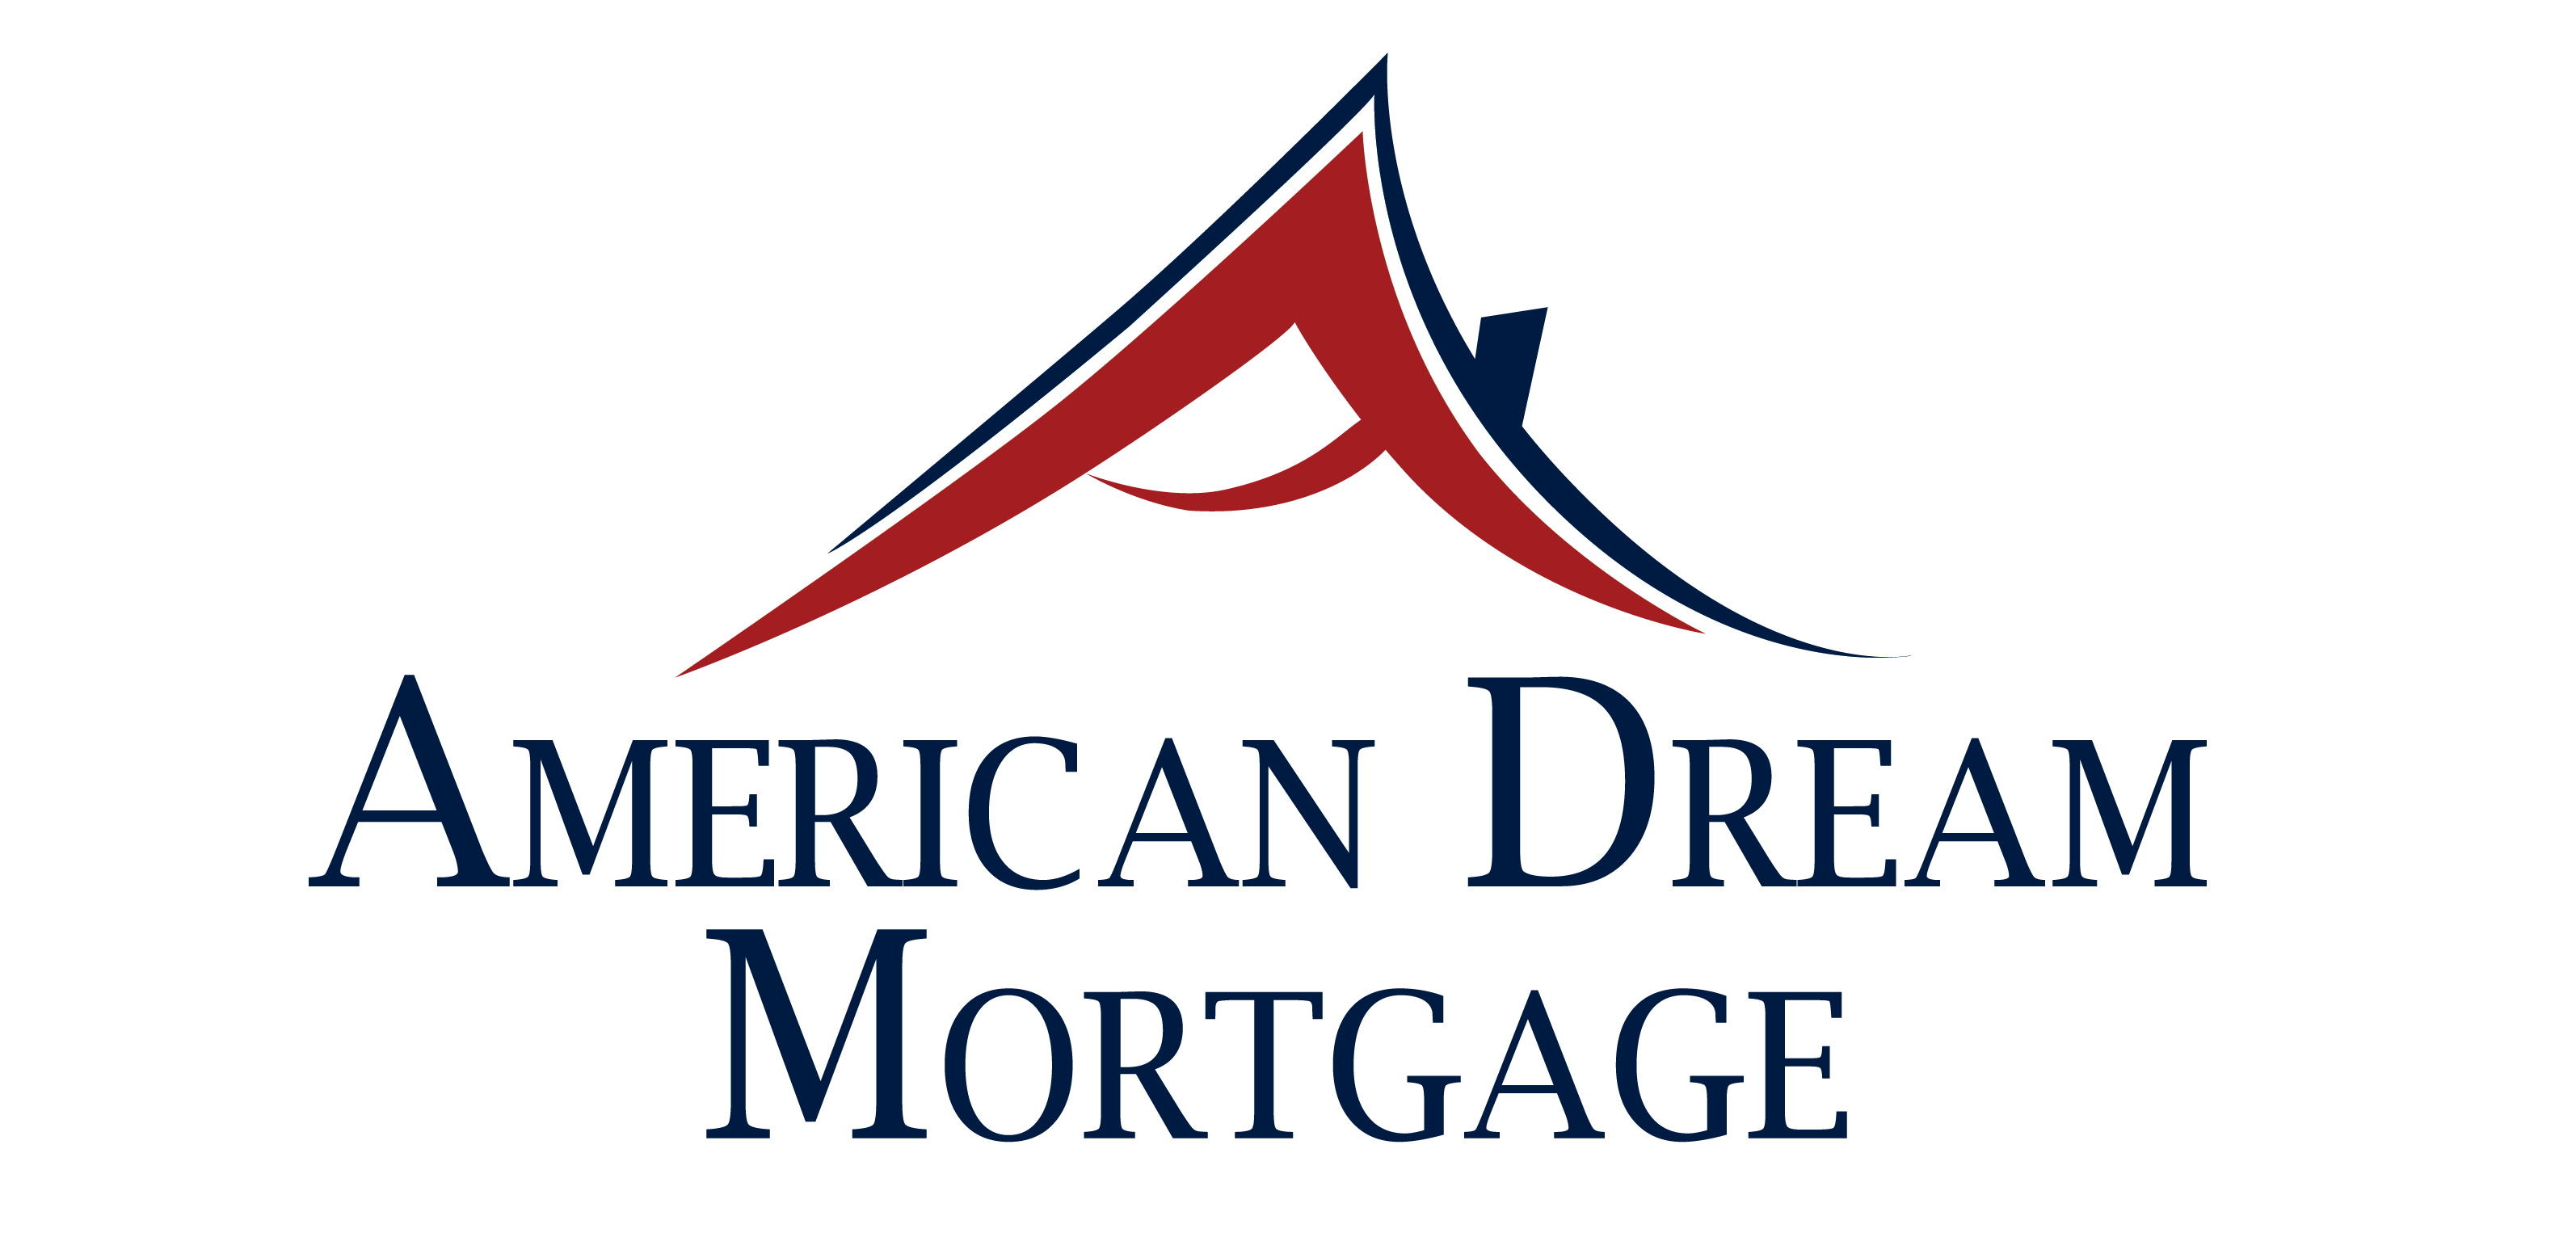 AMERICAN DREAM MORTGAGE logo